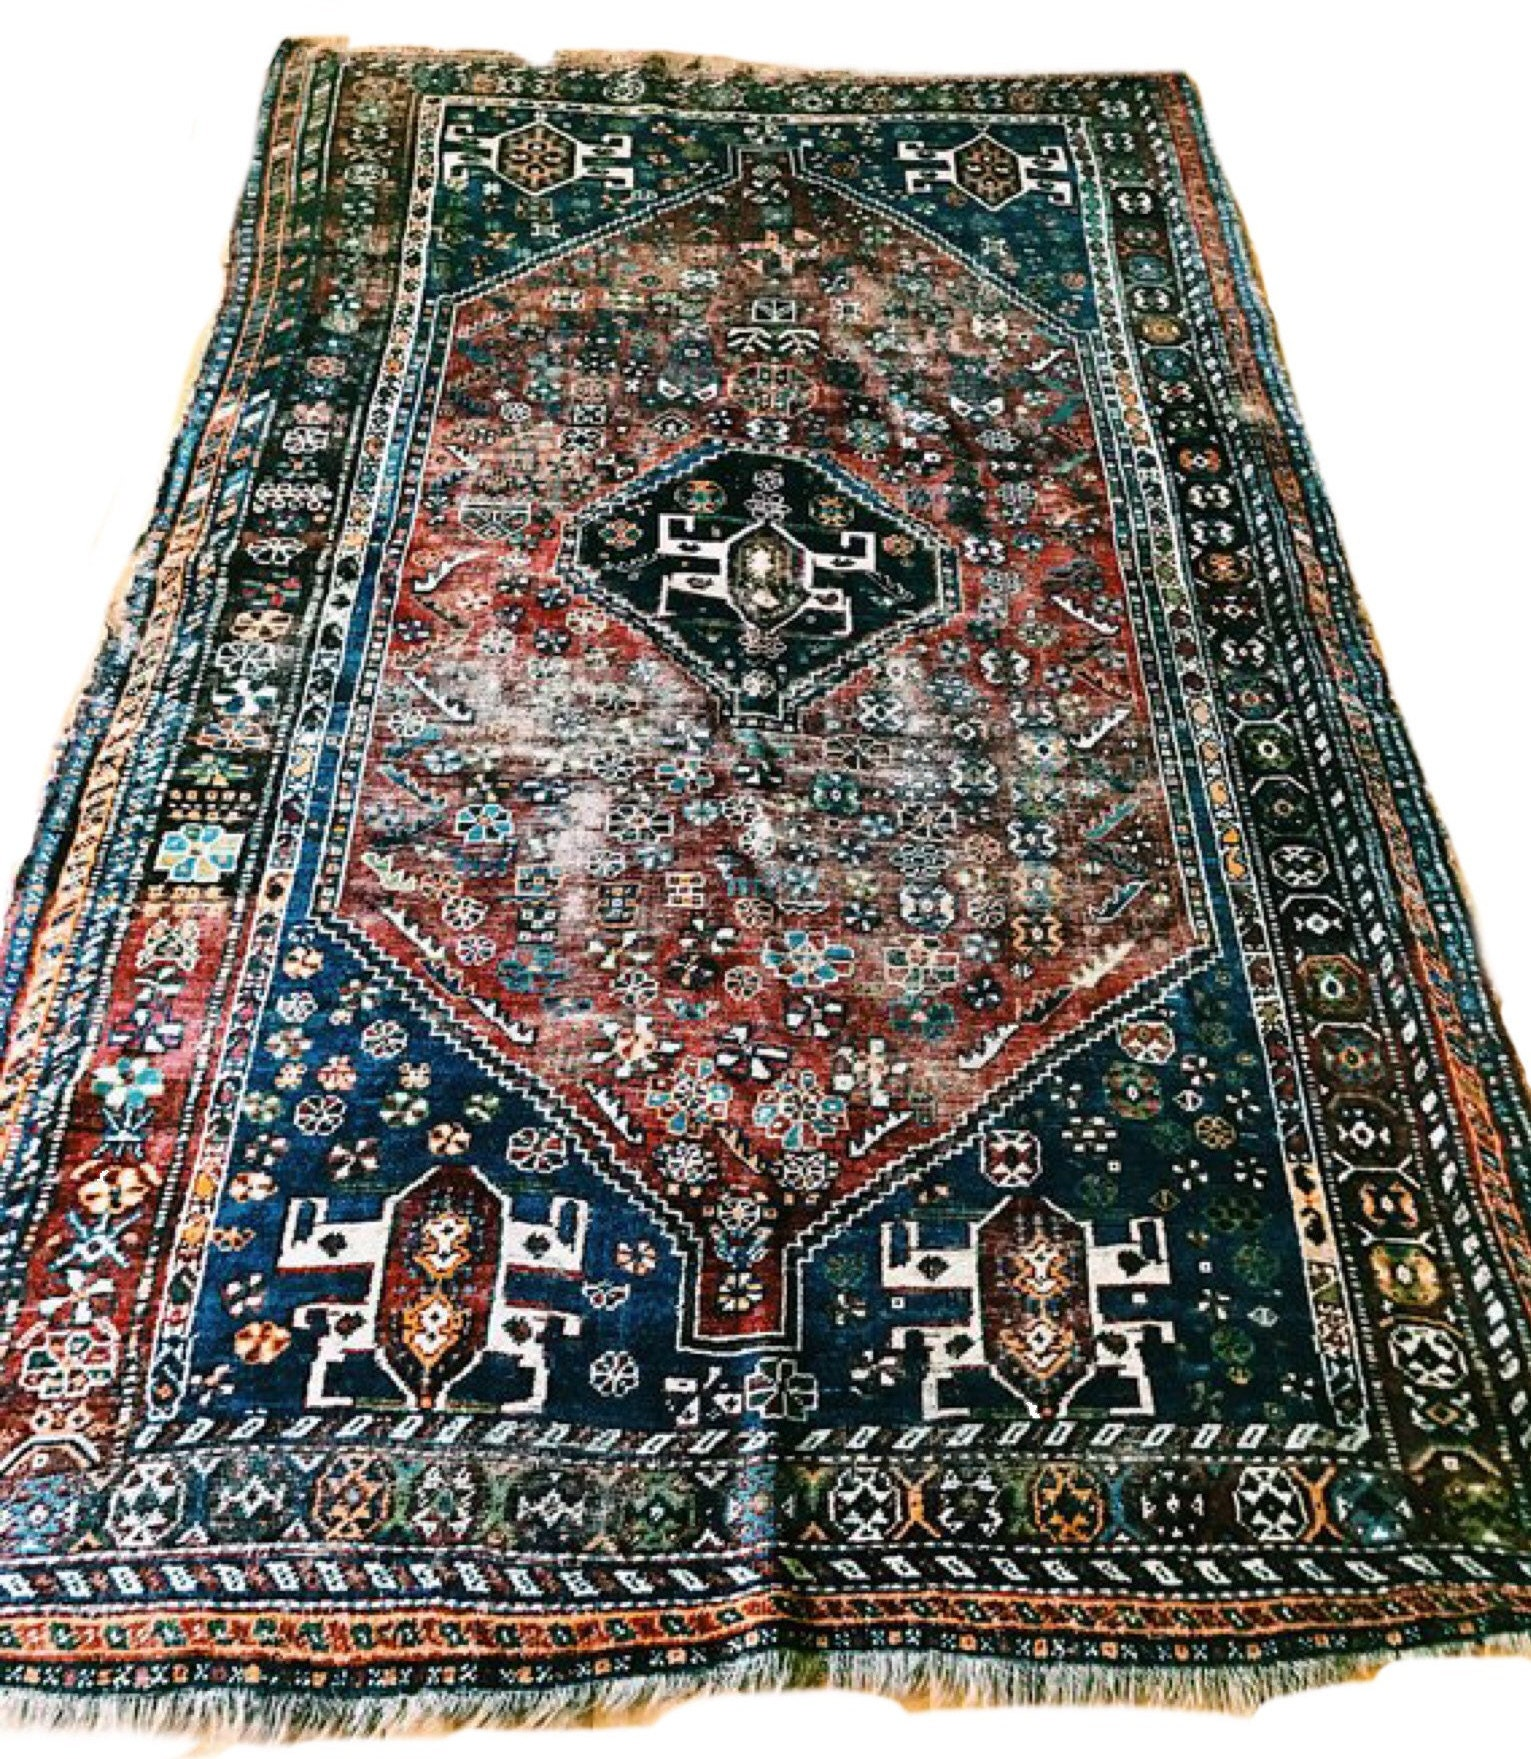 Oriental Rugs Out Of Style: Antique Persian Heriz Style Area Rug / Large Bohemian